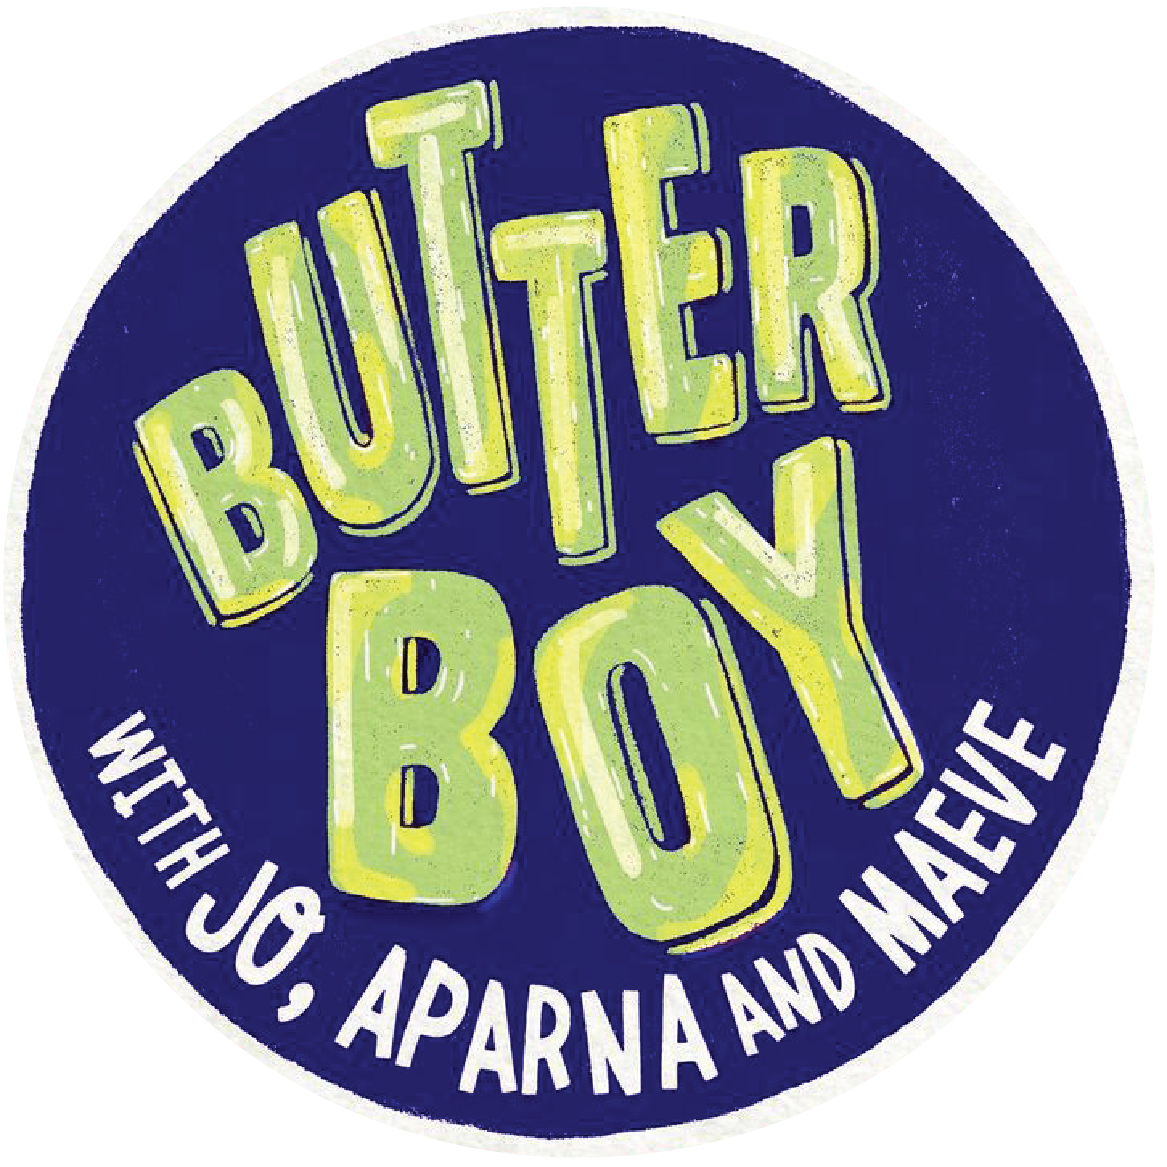 Butterboy_Transparent.png